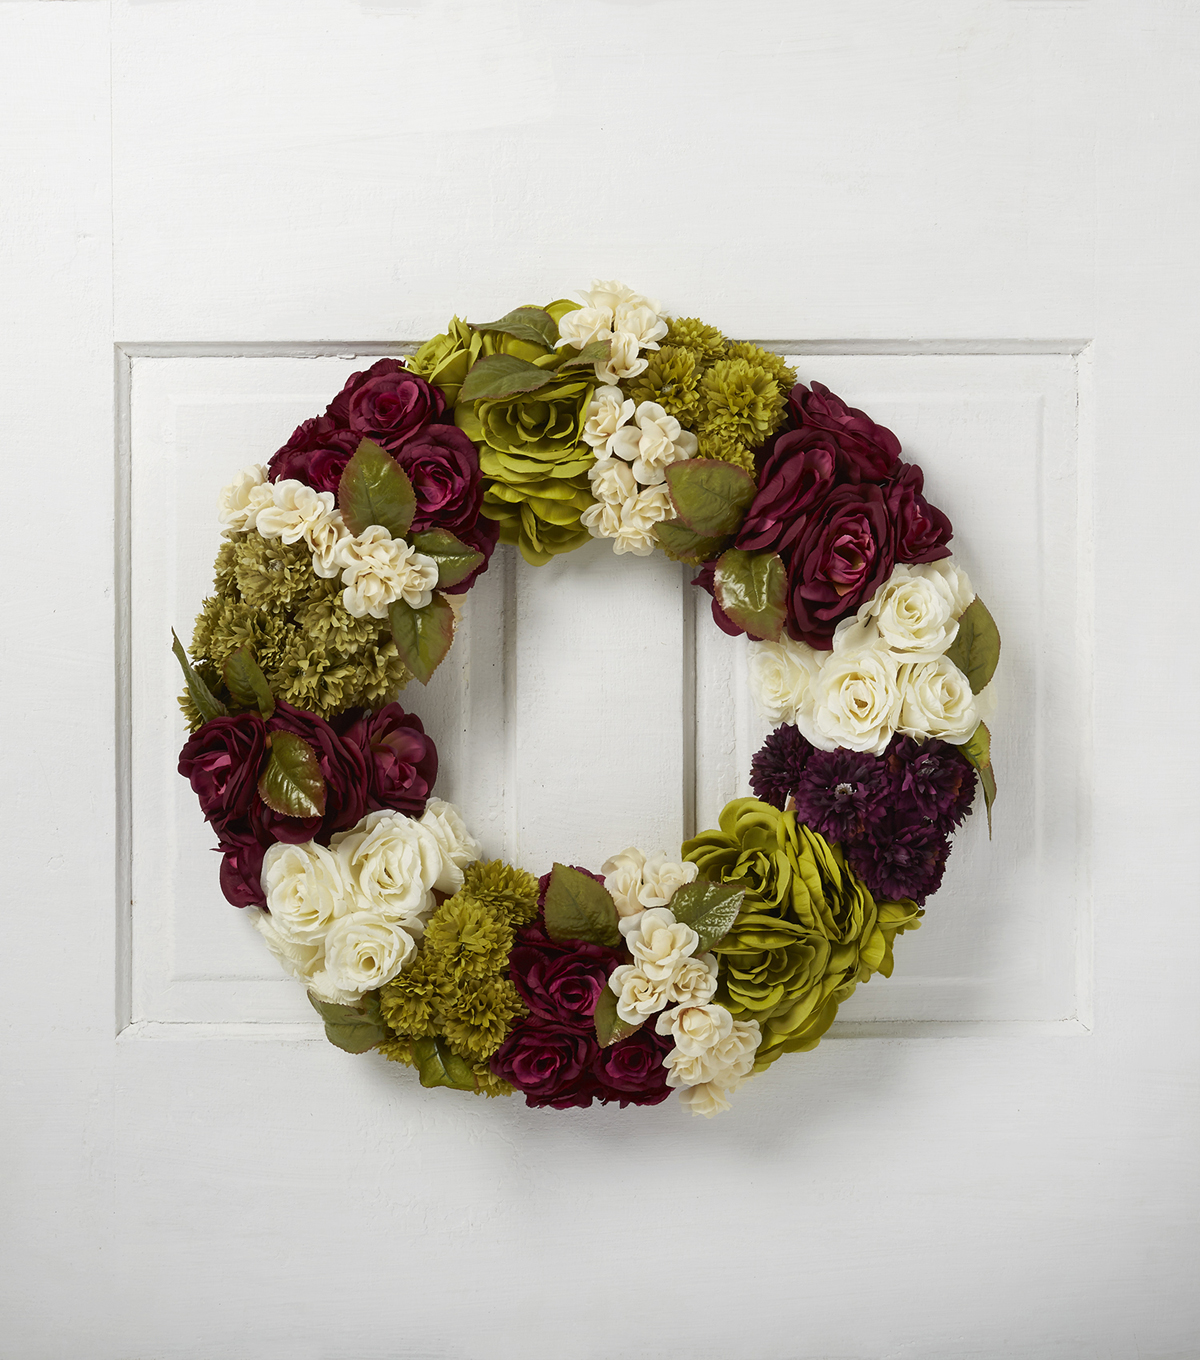 Blooming Autumn 22'' All Over Floral Wreath-Green, Cream & Burgundy